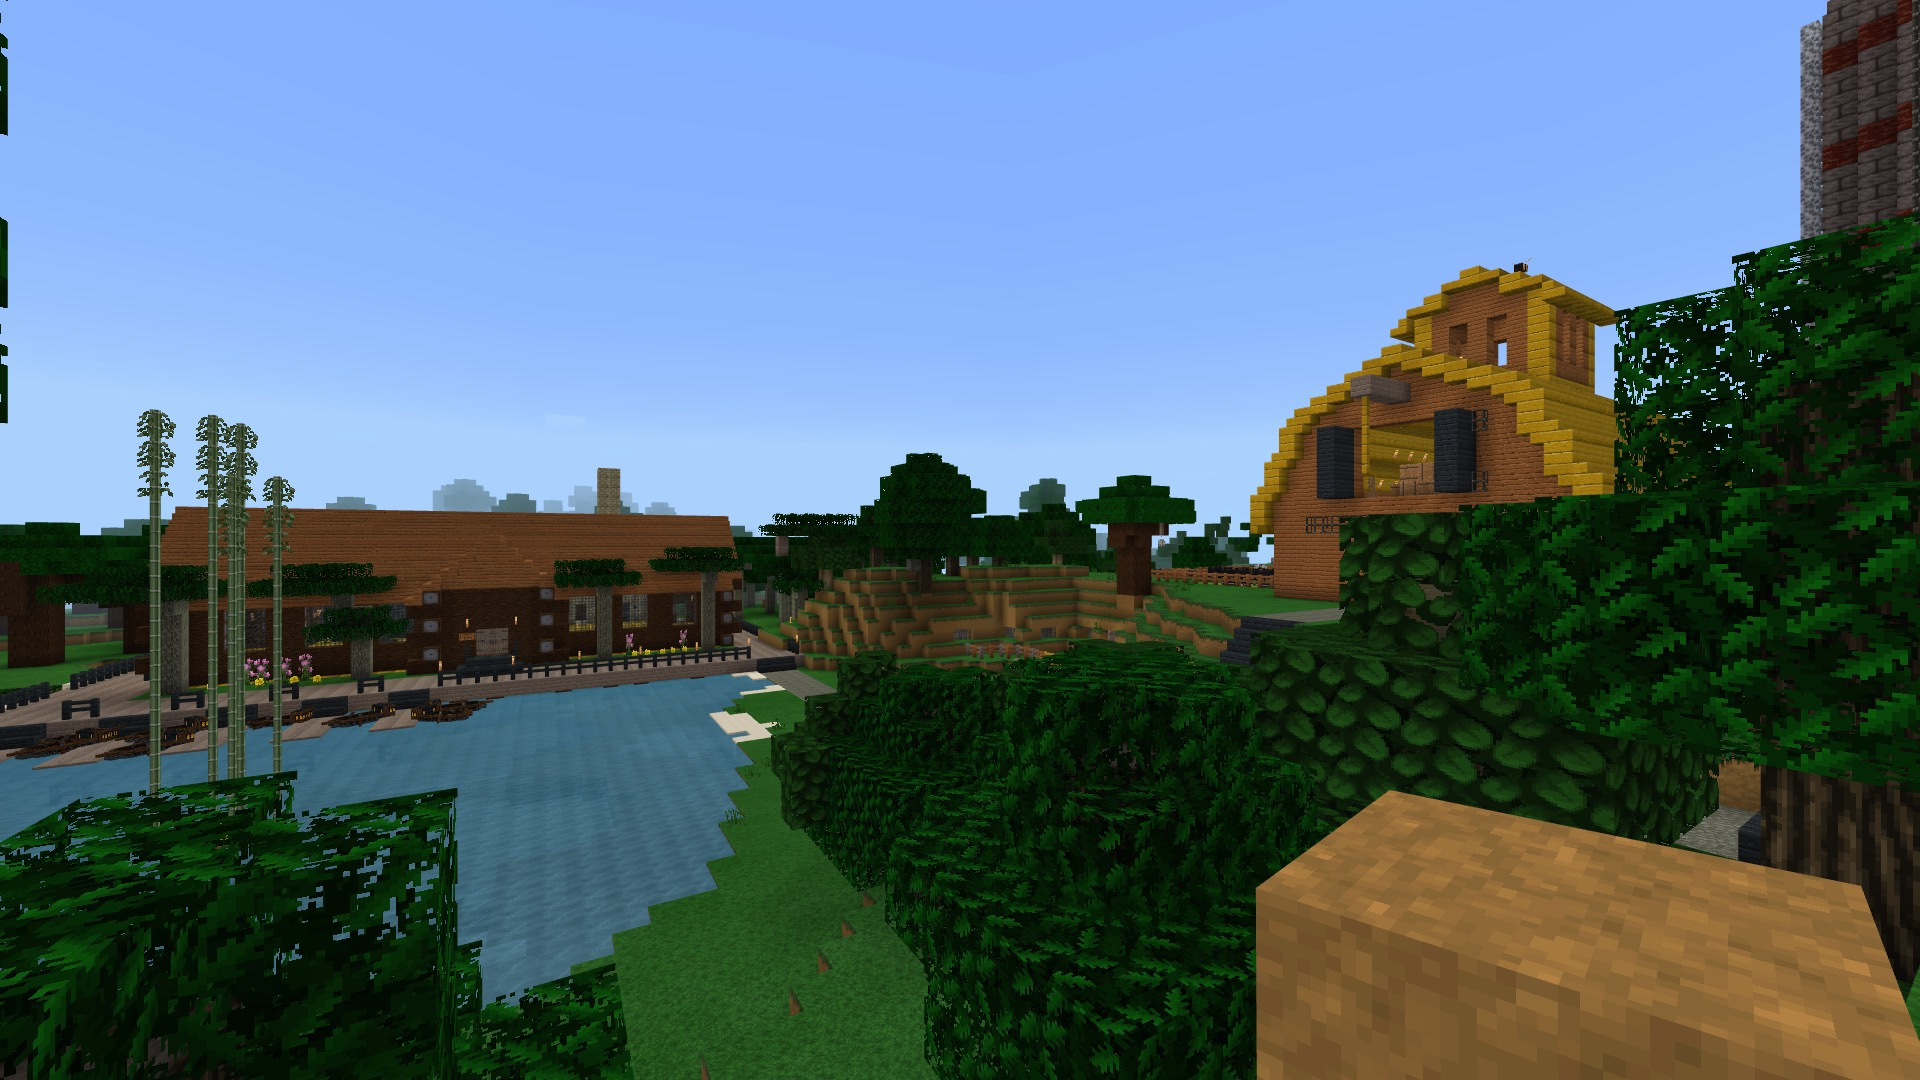 Official Minecraft Texture Packs Our Mojang Top 5 Super Co Op Bros